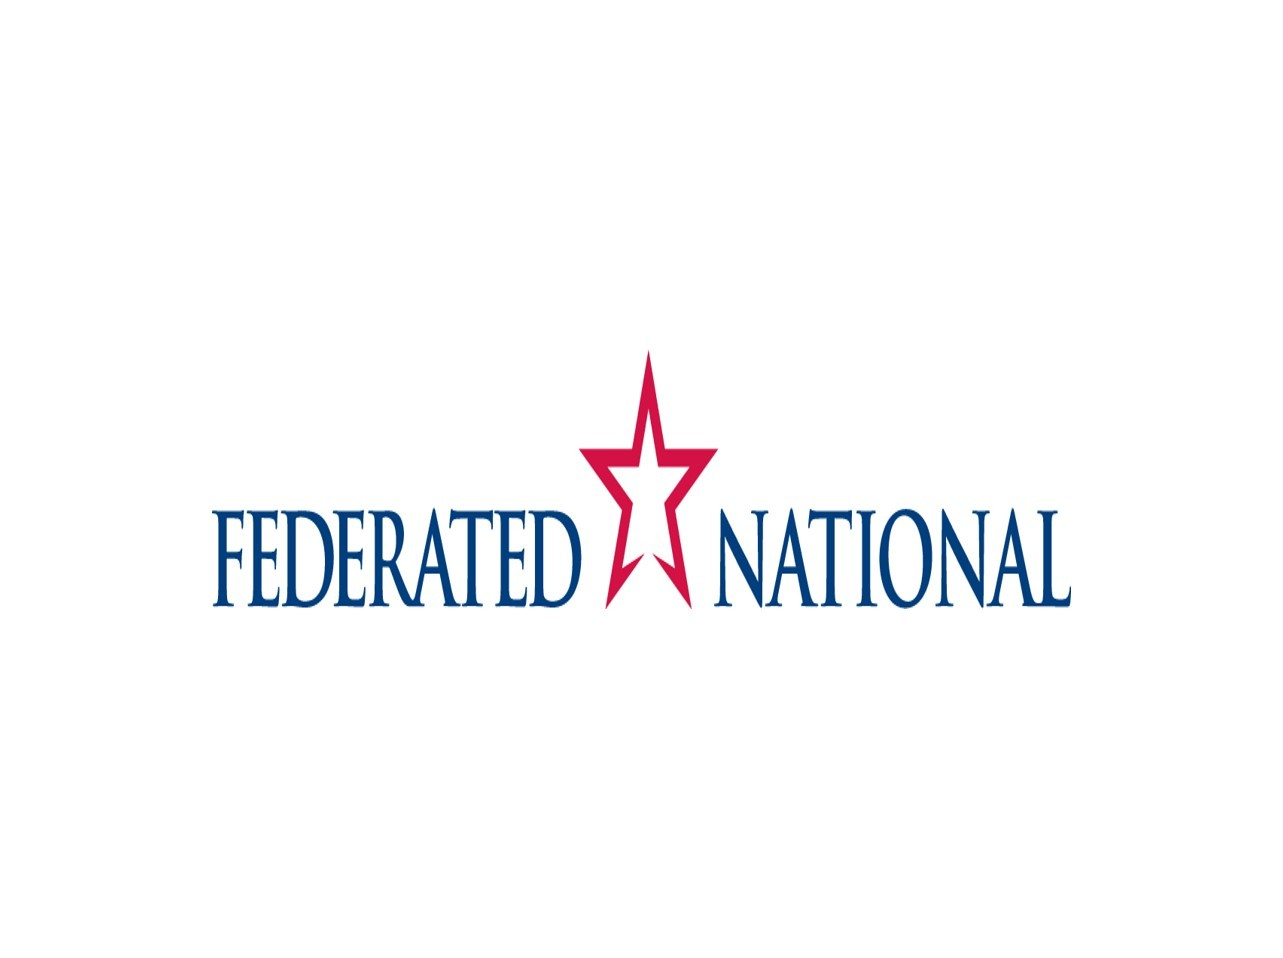 "<p><span style=""font-weight: bold;"">Federated national</span>&nbsp;</p>"